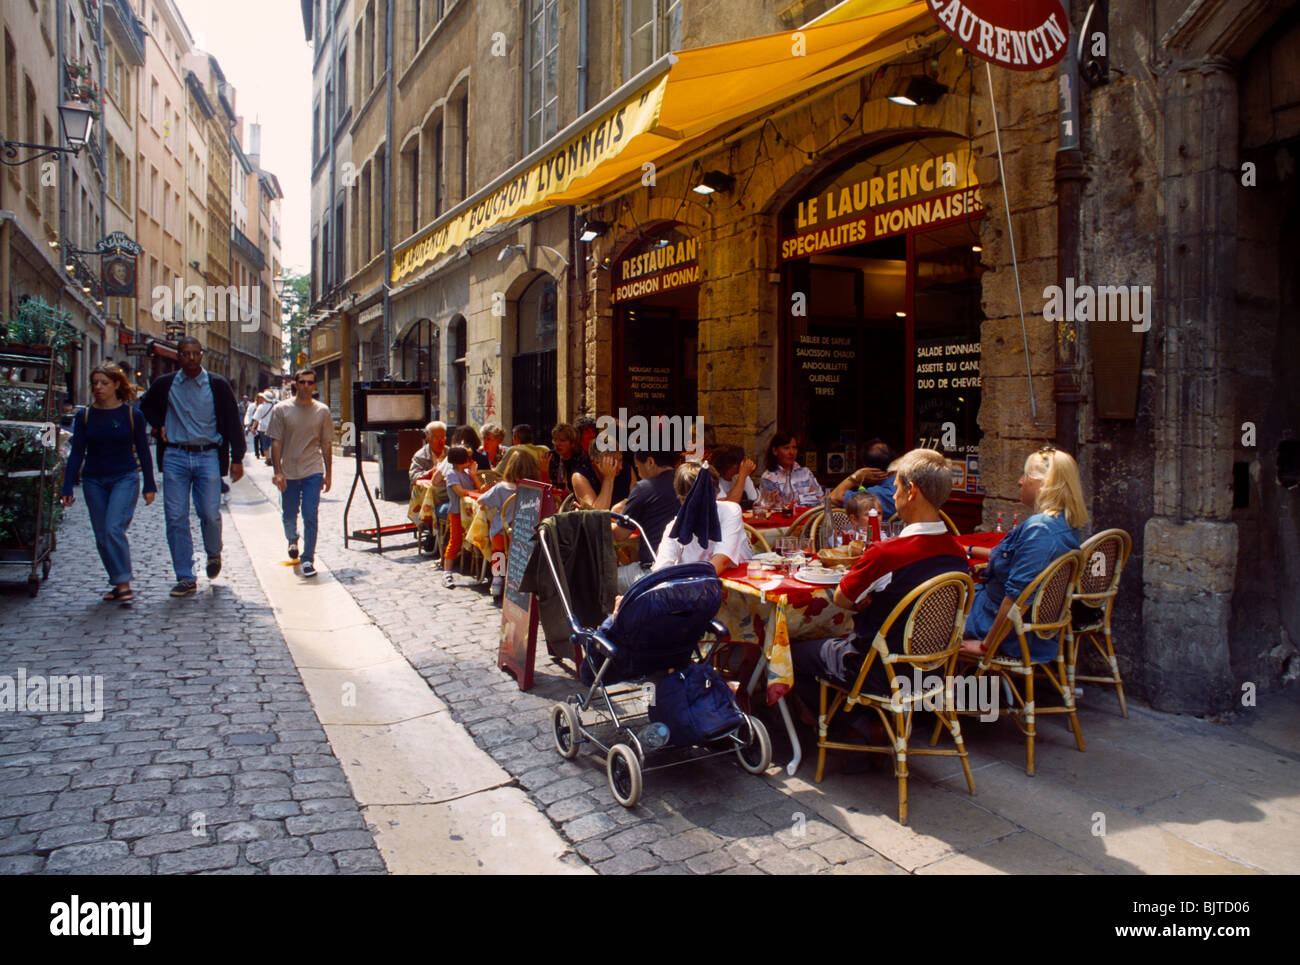 Lyon France 0ld Town Restaurant - Stock Image